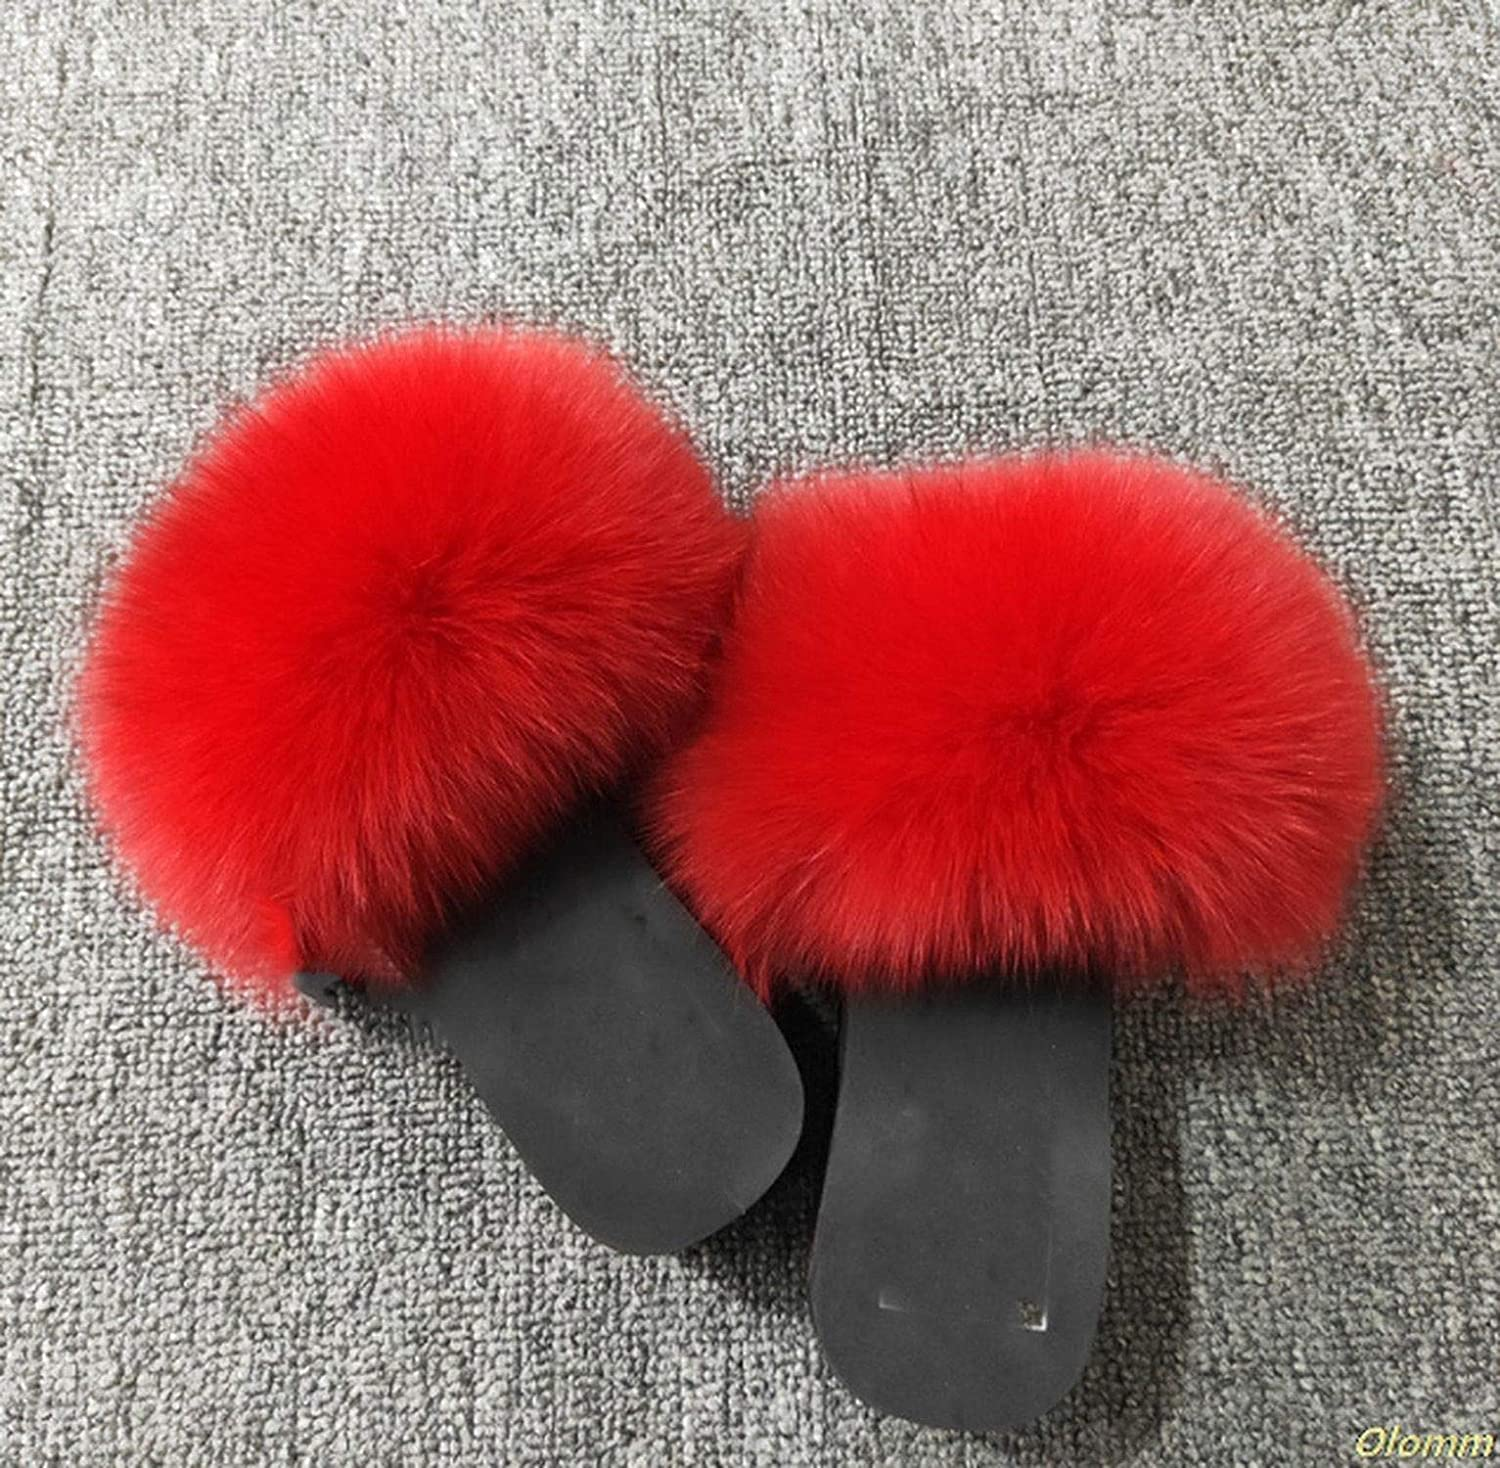 Real Fur Slippers Platform Women Fox Home Fluffy Slippers with Feathers Furry Summer Flats Ladies Shoes Fox Fur Flip Flops,Fox Hair,6.5